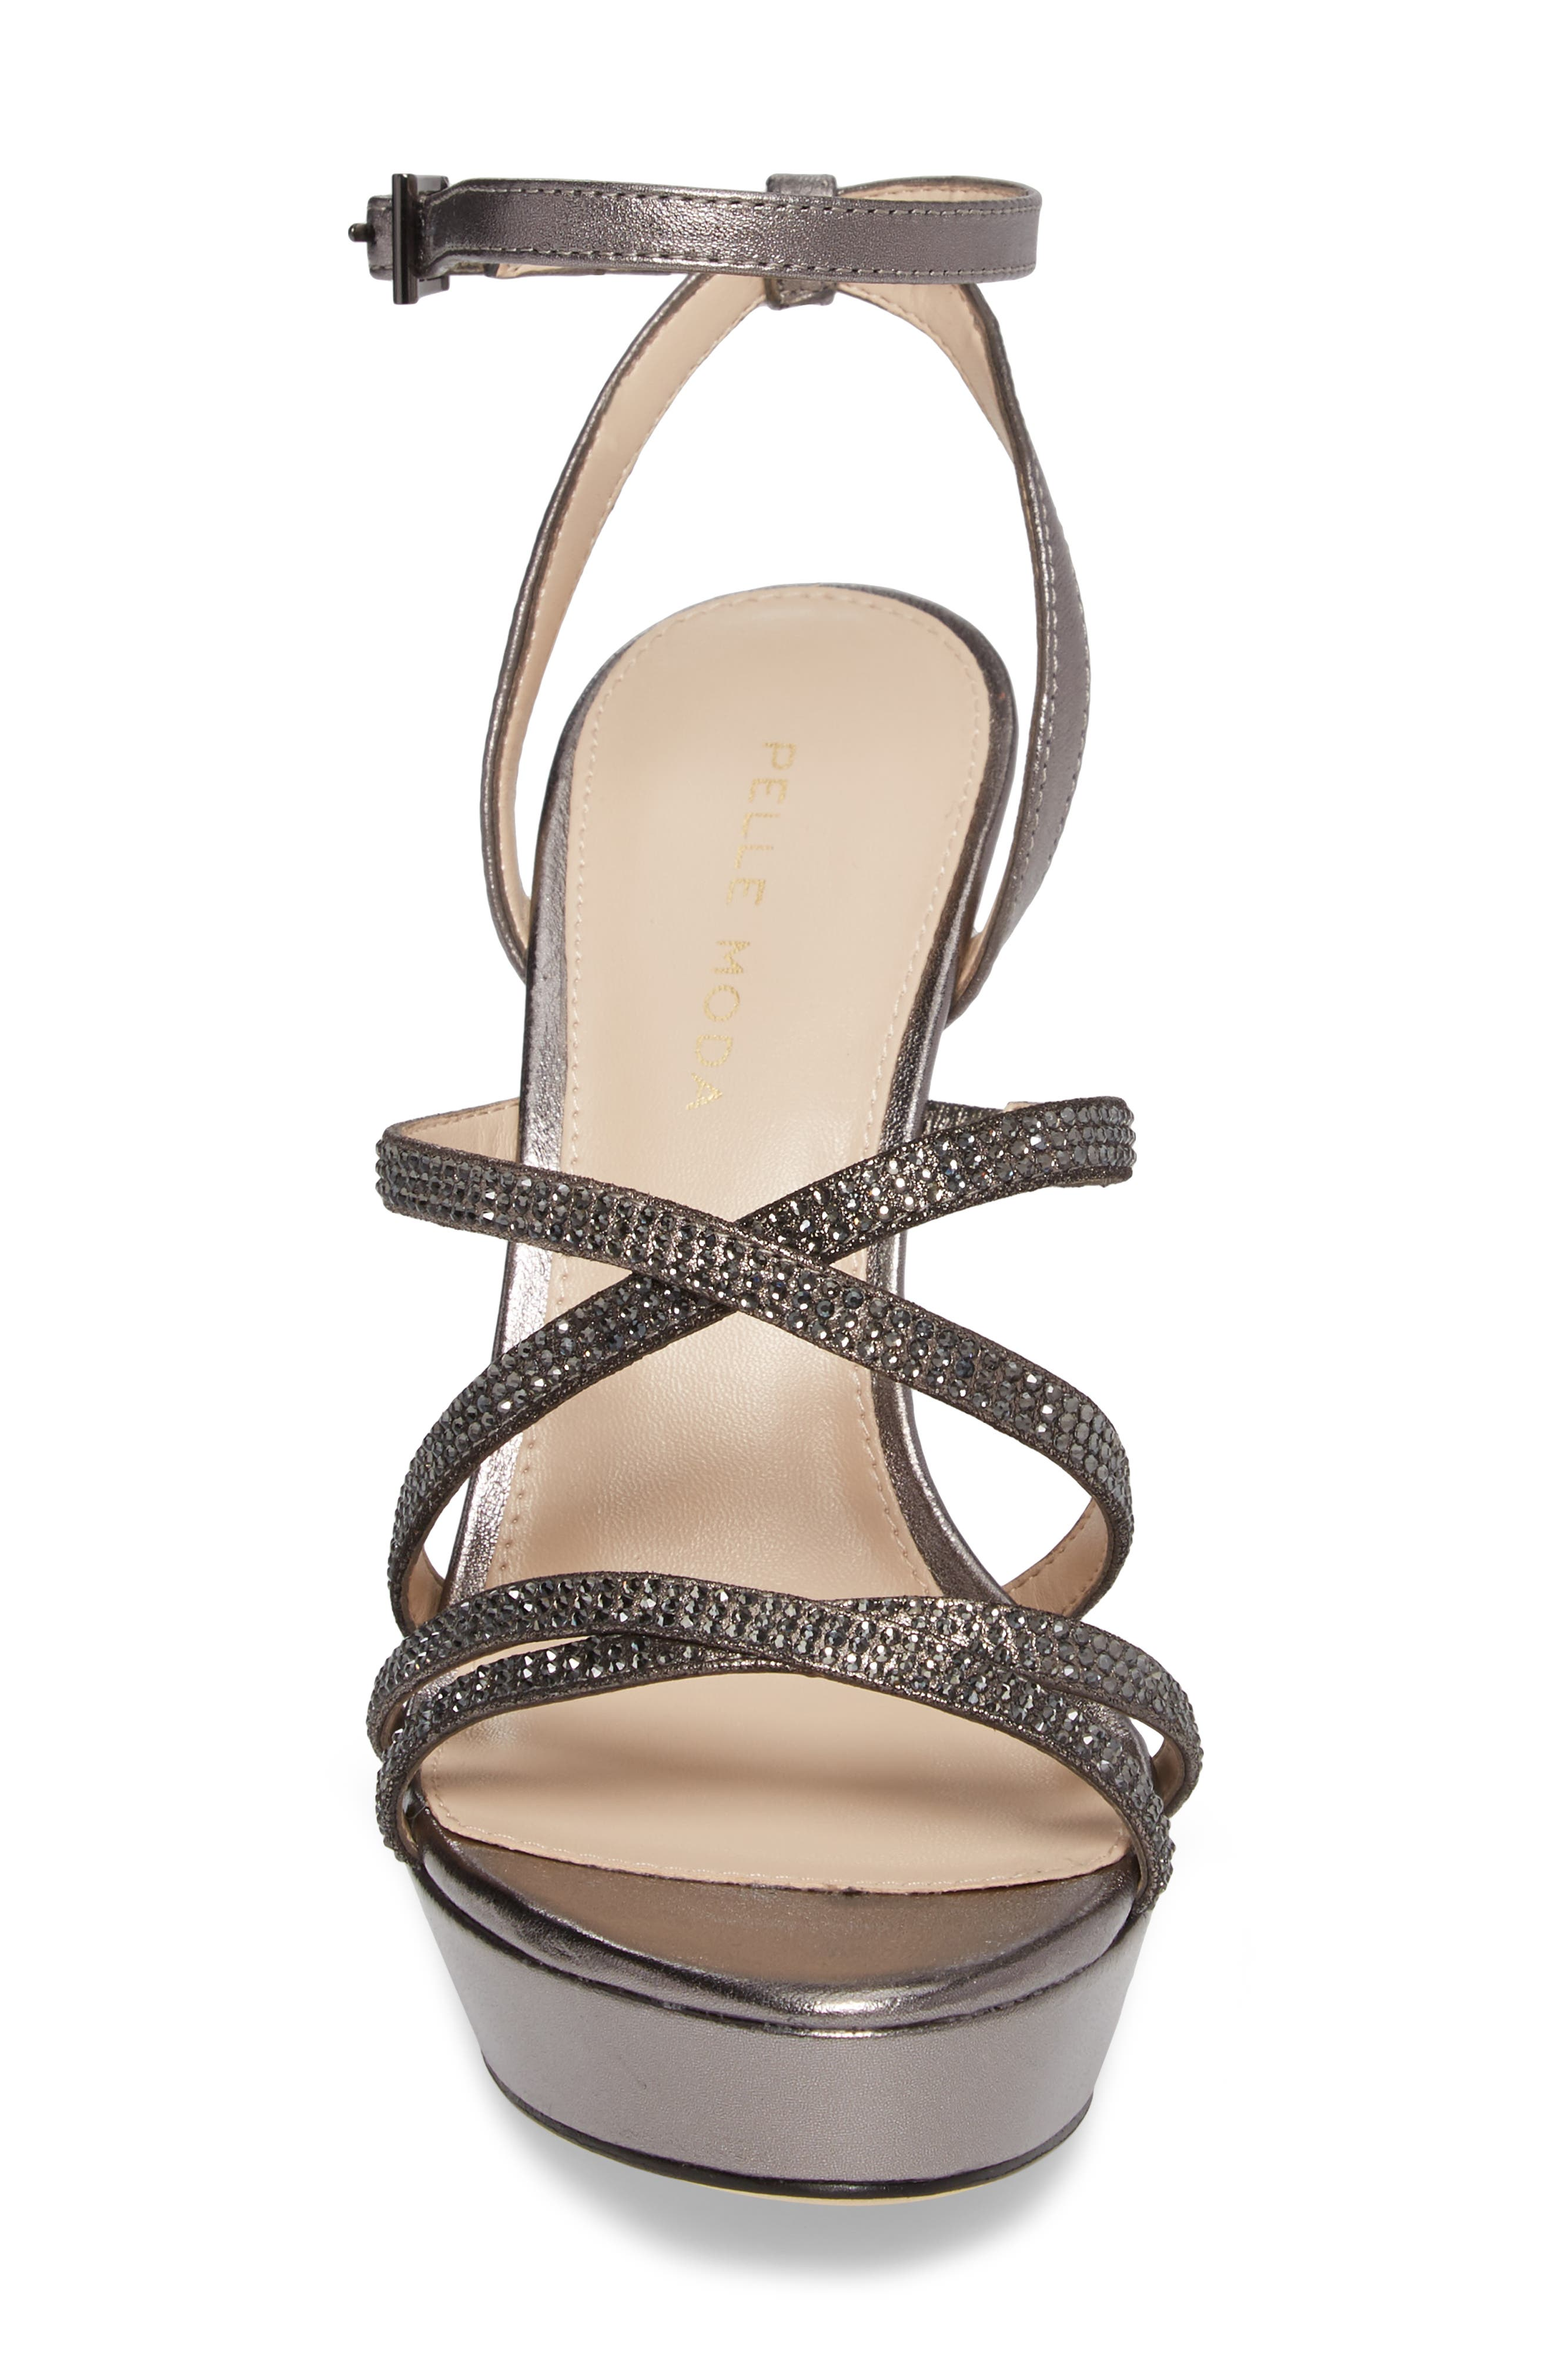 Oak Platform Sandal,                             Alternate thumbnail 4, color,                             Pewter Metallic Suede